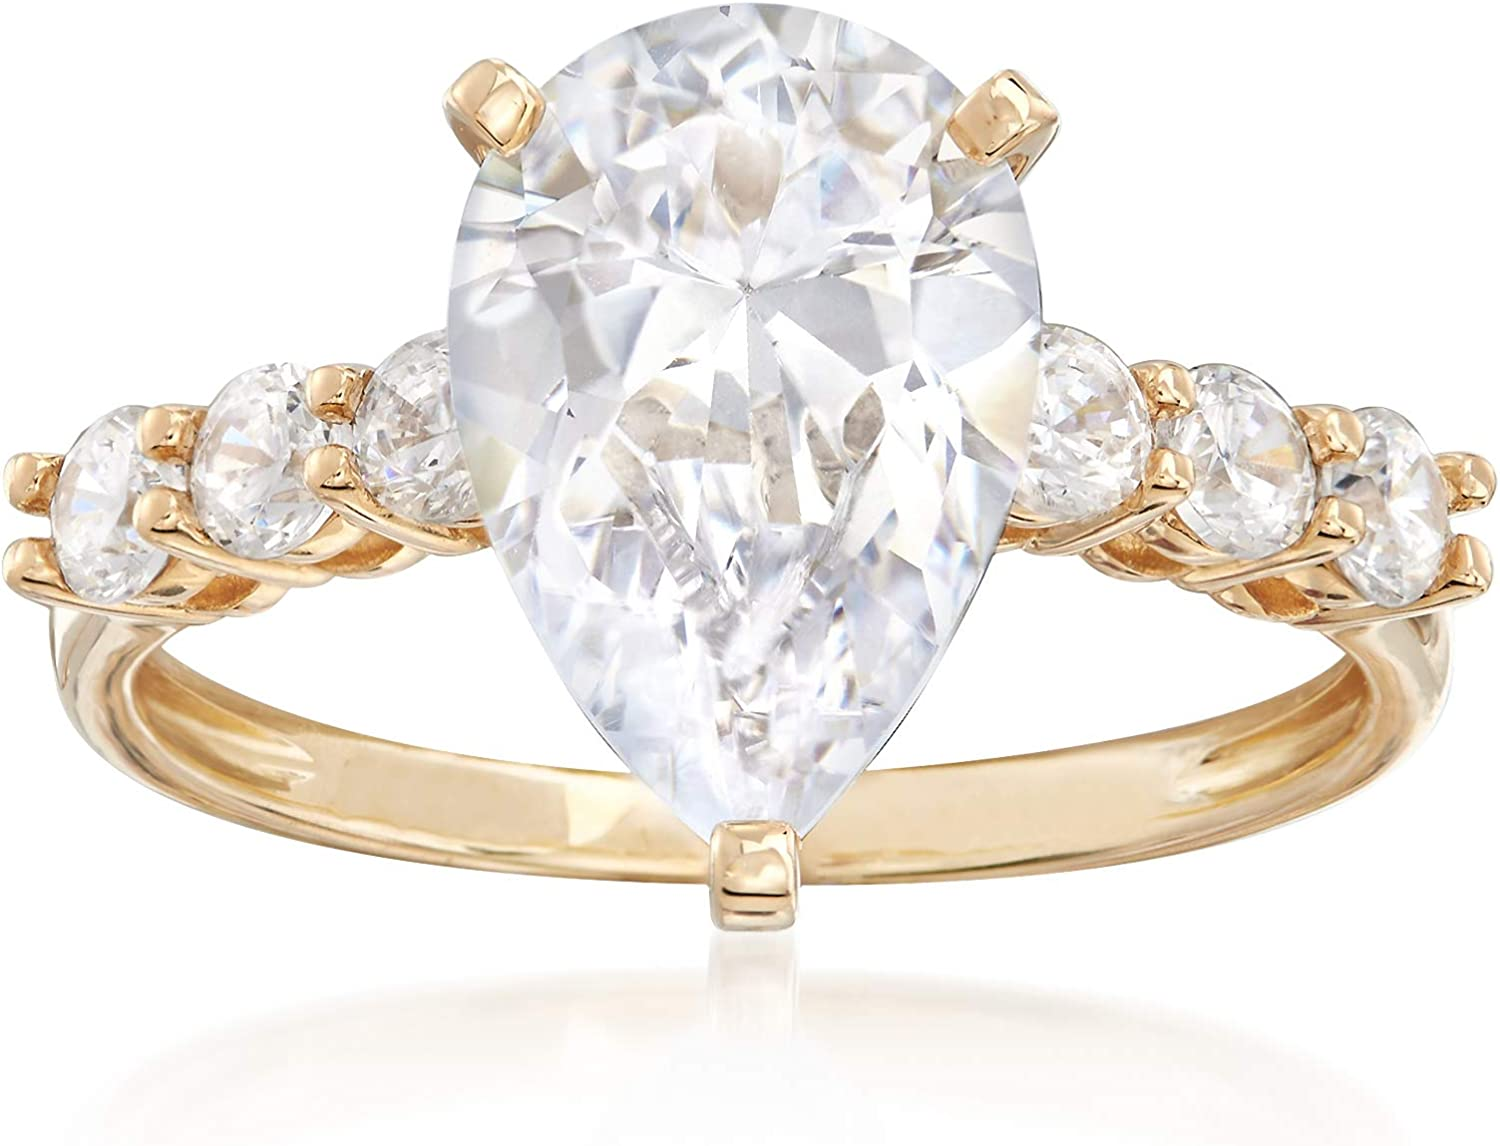 Ross-Simons 3.60 ct. t.w. Pear-Shaped and Round CZ Ring in 14kt Yellow Gold